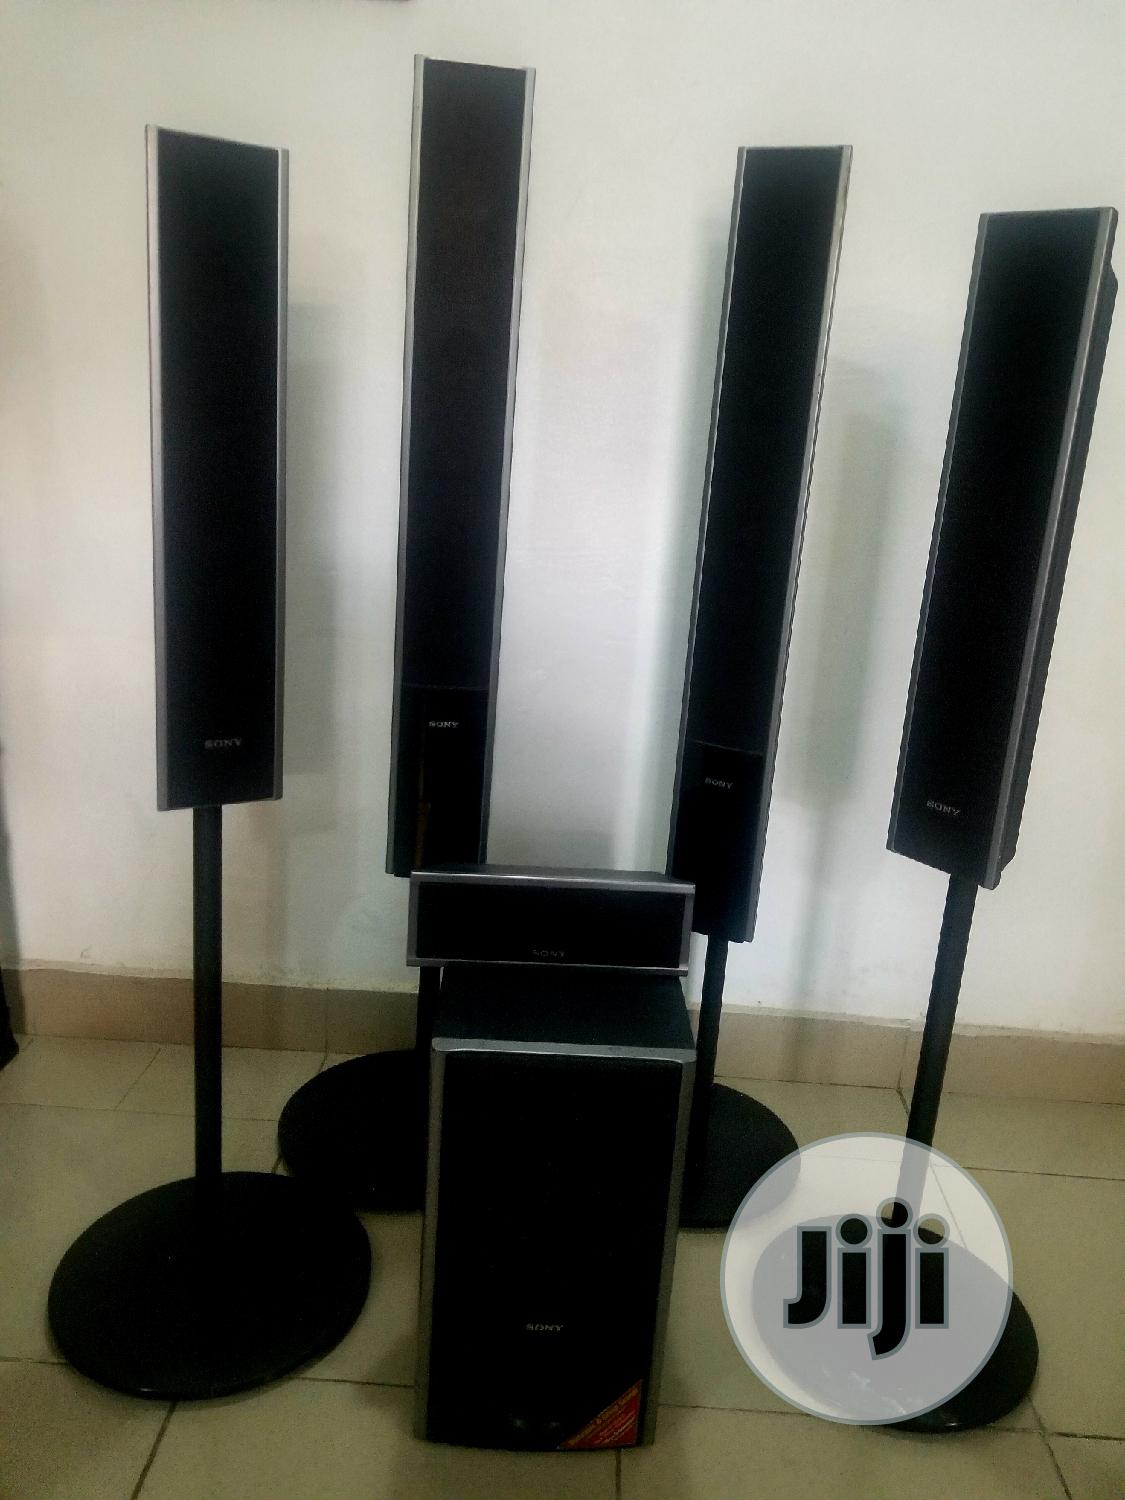 Archive: Original Sony Home Theater Speakers & Woofer